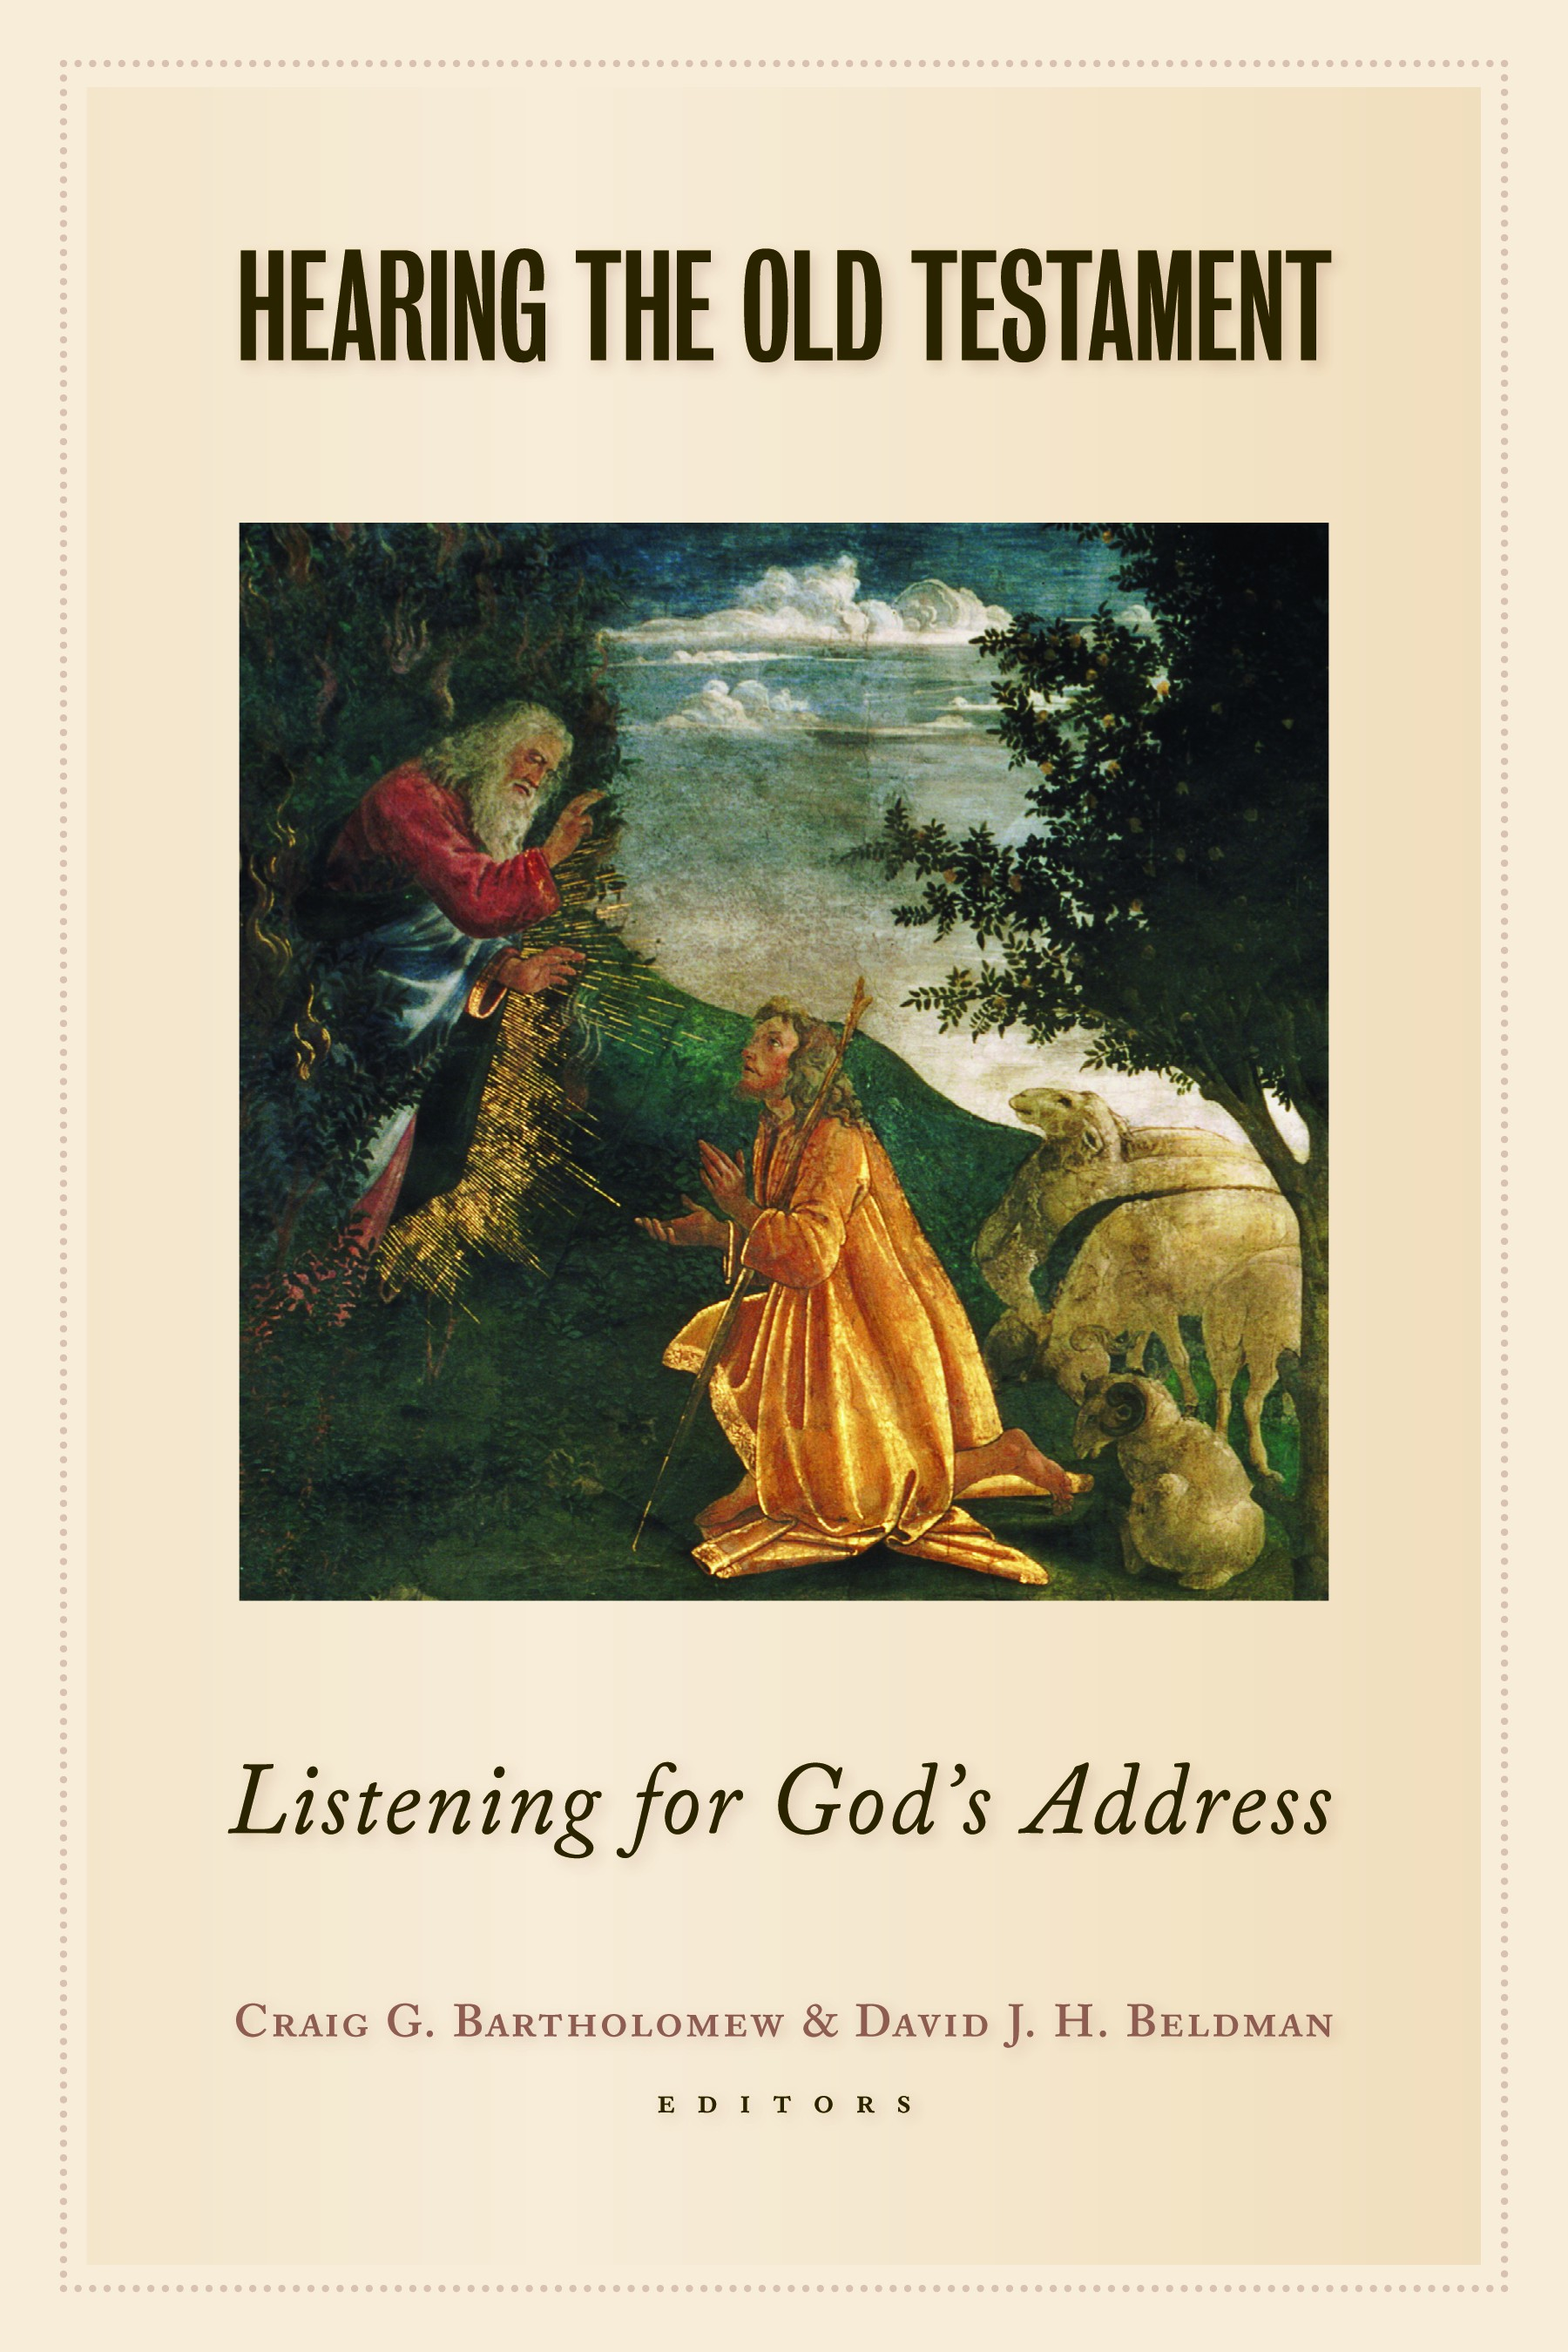 essays on old testament history and religion Essays on old testament history and religion by alt, albrecht and a great selection of similar used, new and collectible books available now at abebookscouk.